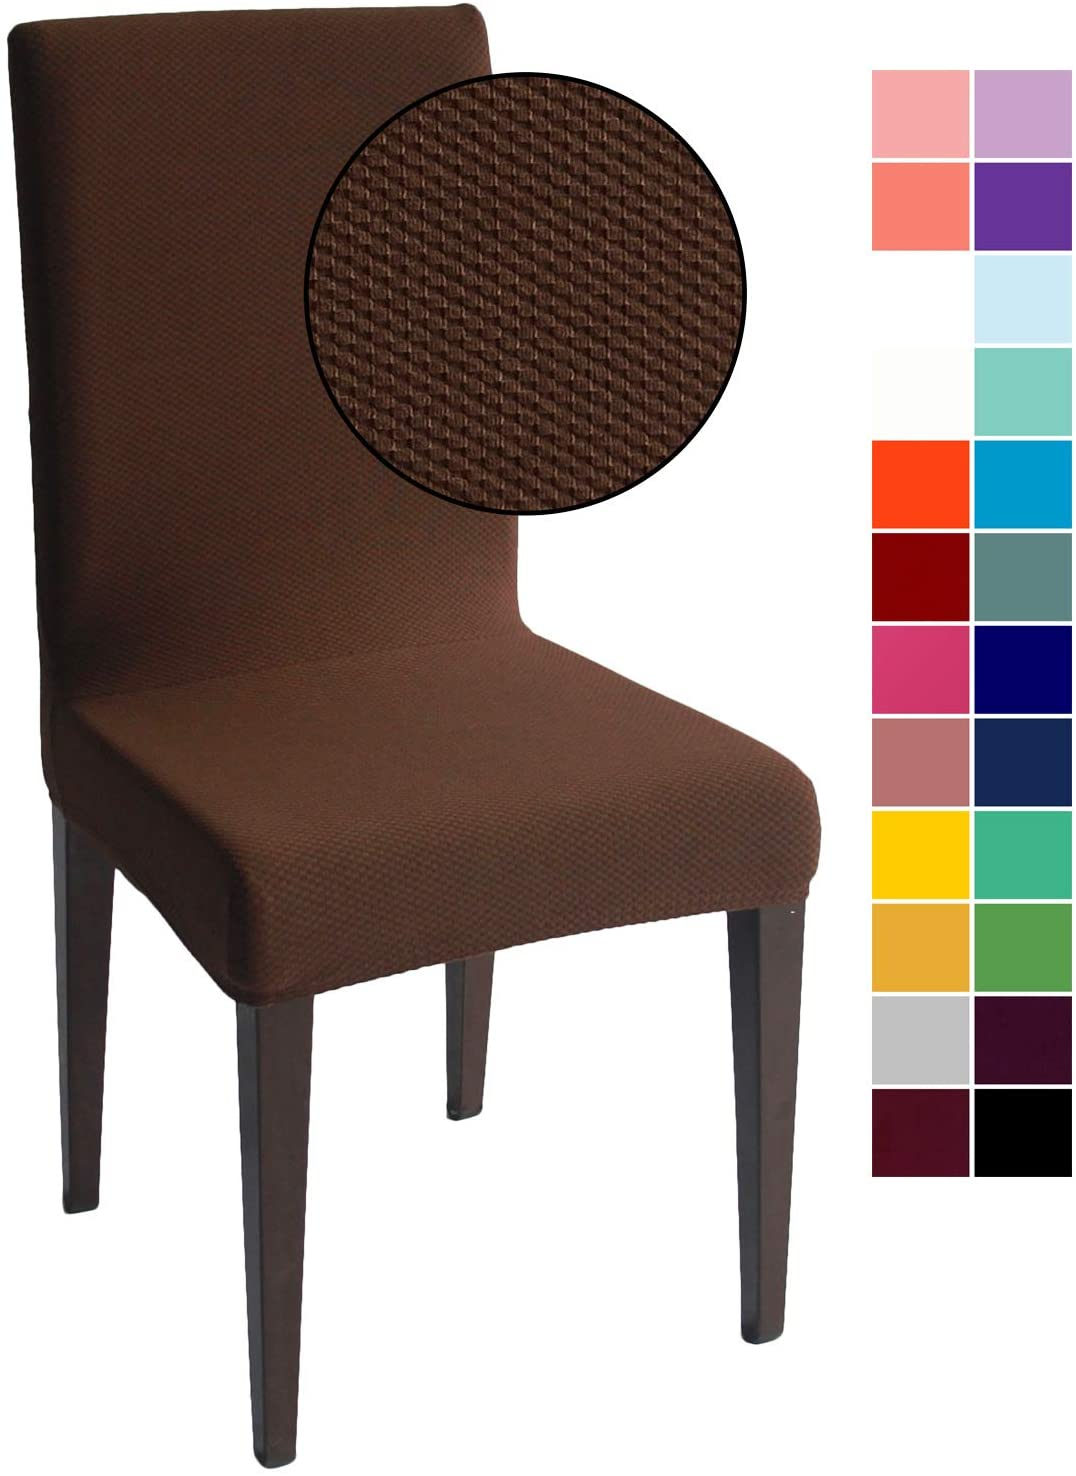 Chocolate Jacquard Spandex Dining Chair Covers - 4 PCS Stretch Removable Washable Dining Chair Slipcovers (Chocolate Jacquard, 4)